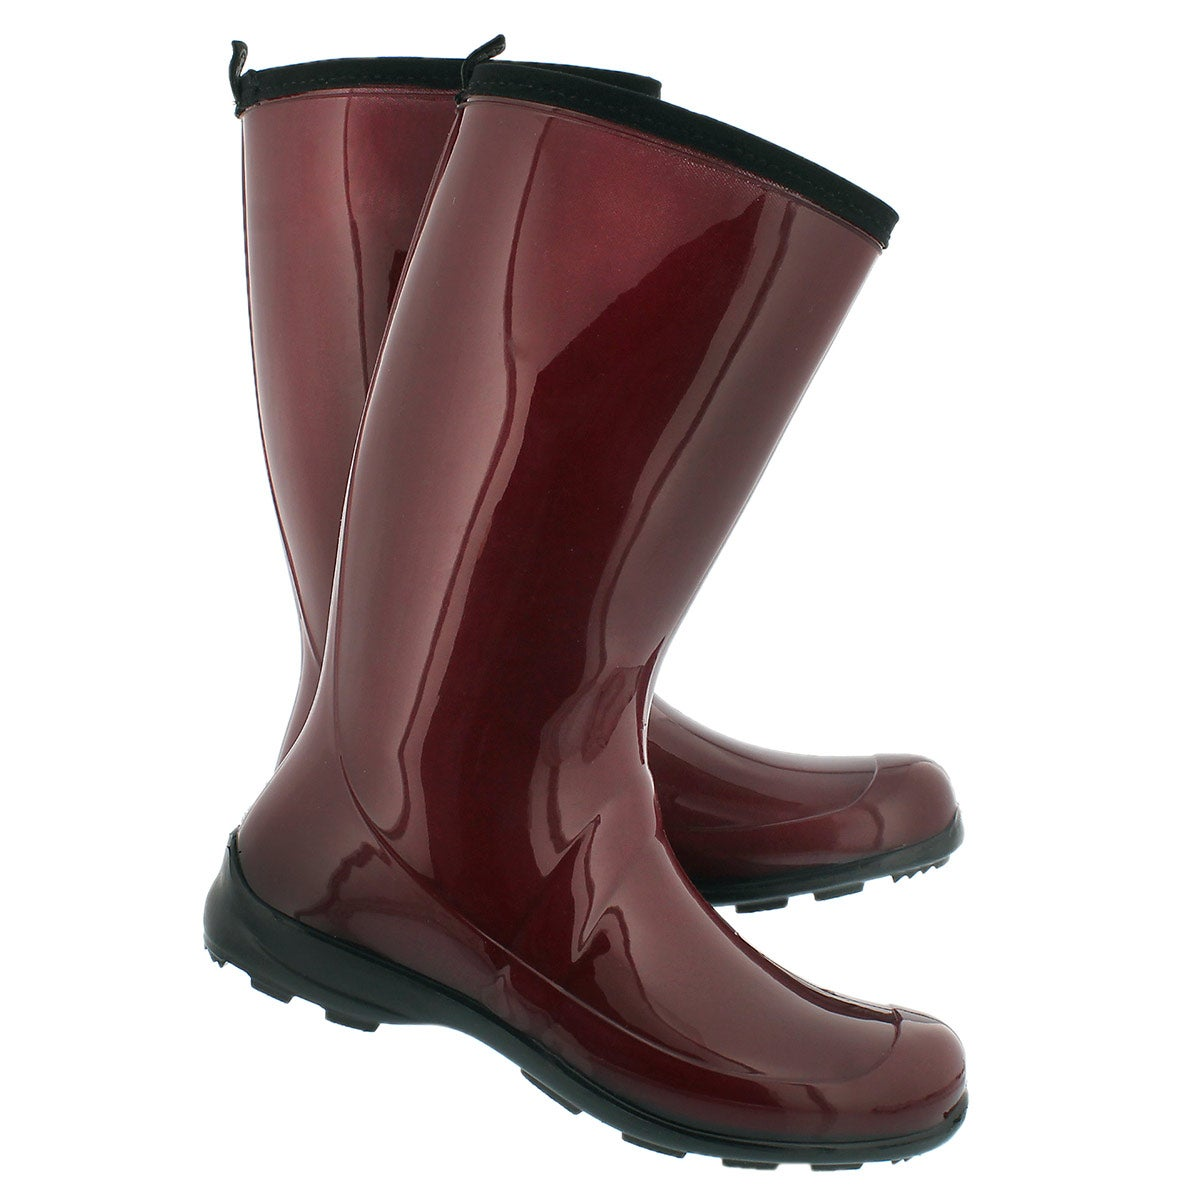 Lds Heidi red mid wtpf rain boot